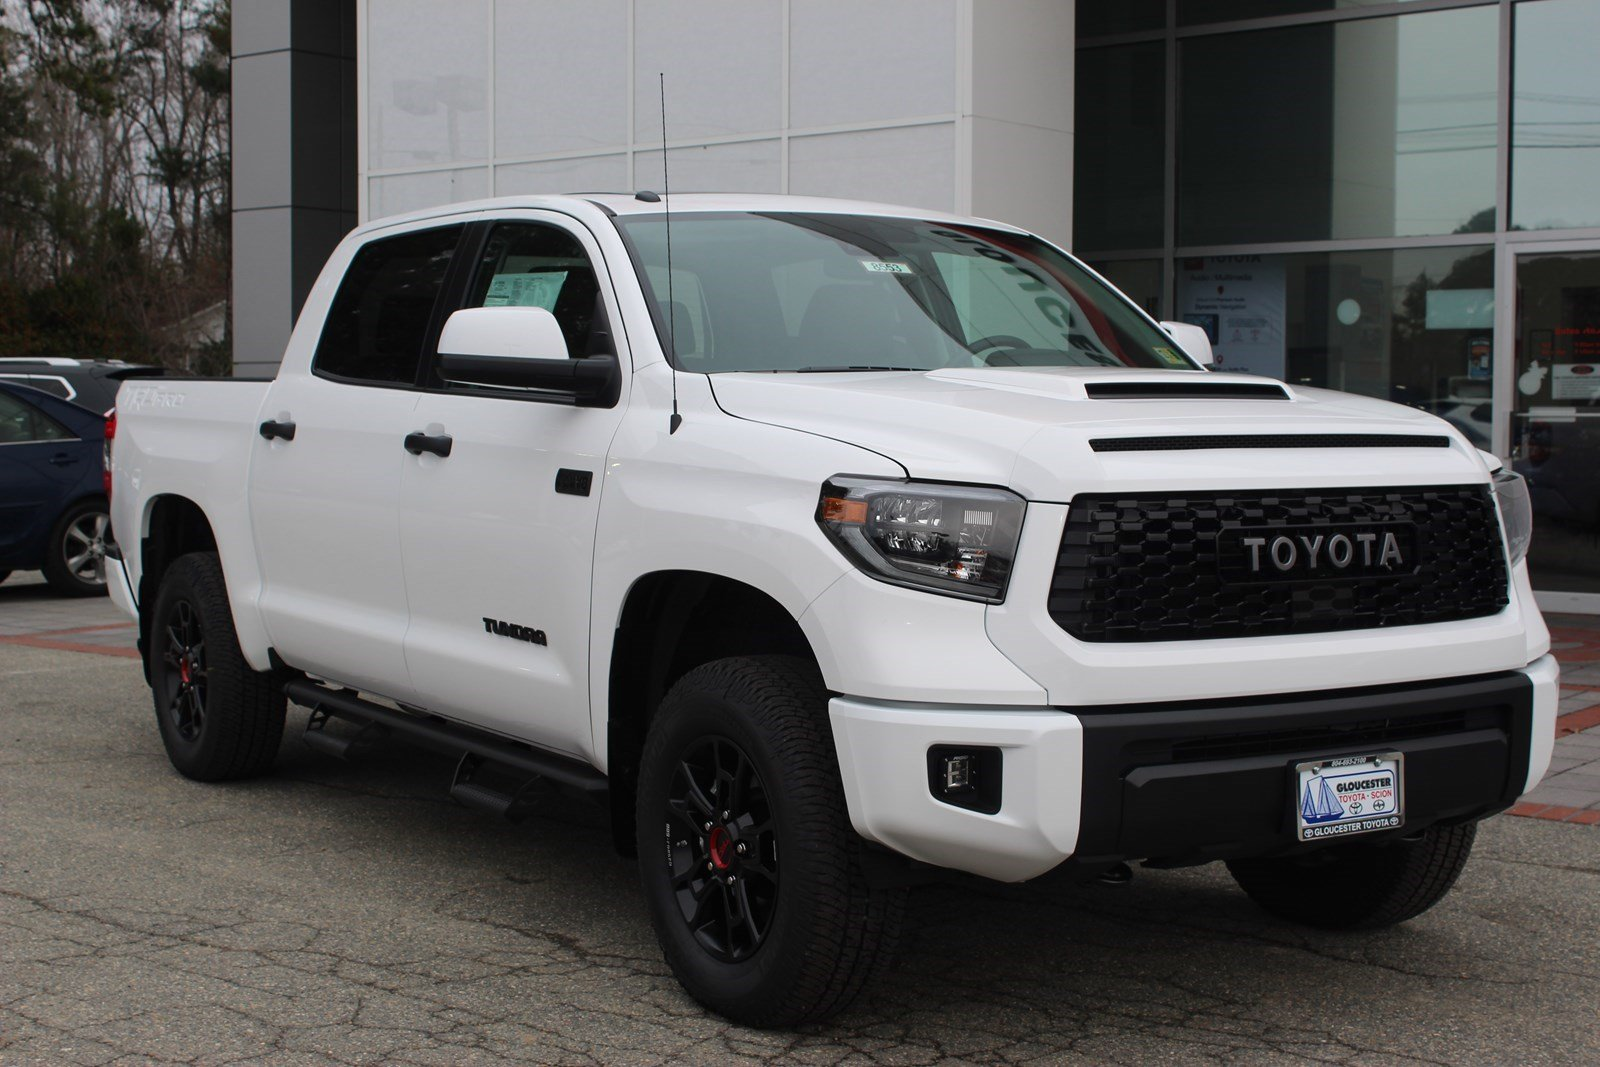 Trd Pro Tundra >> New 2019 Toyota Tundra 4wd Trd Pro Crew Cab Pickup In Gloucester